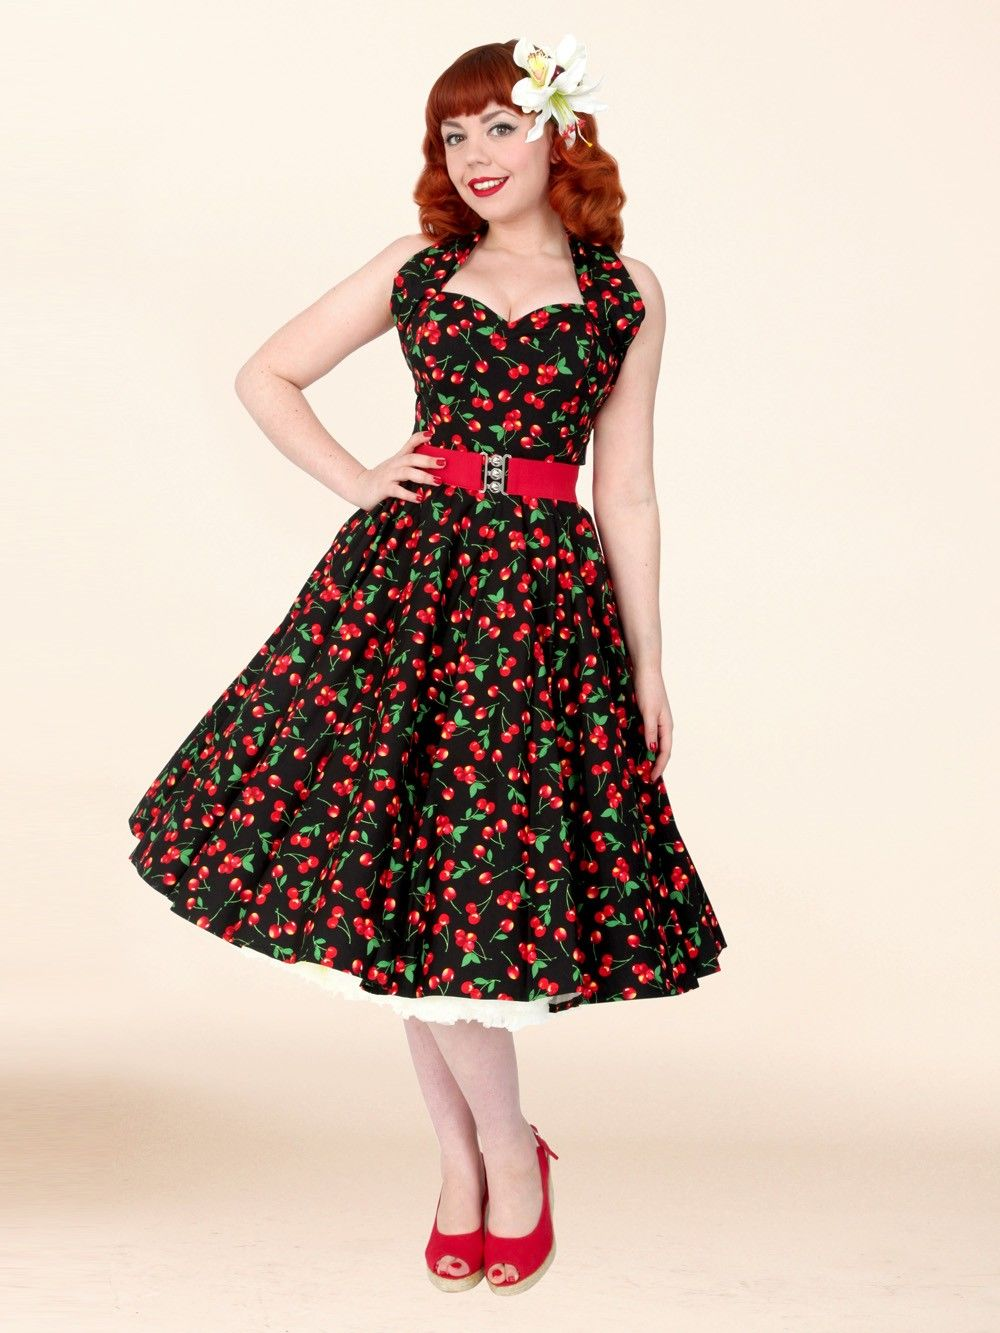 998742a78c3 50s-1950s-Vivien-of-Holloway-Best-Vintage-Reproduction -Halterneck-Circle-Dress-Red-Black-Sateen-Cherry-Fruit-Print-Rockabilly-Swing-Pinup